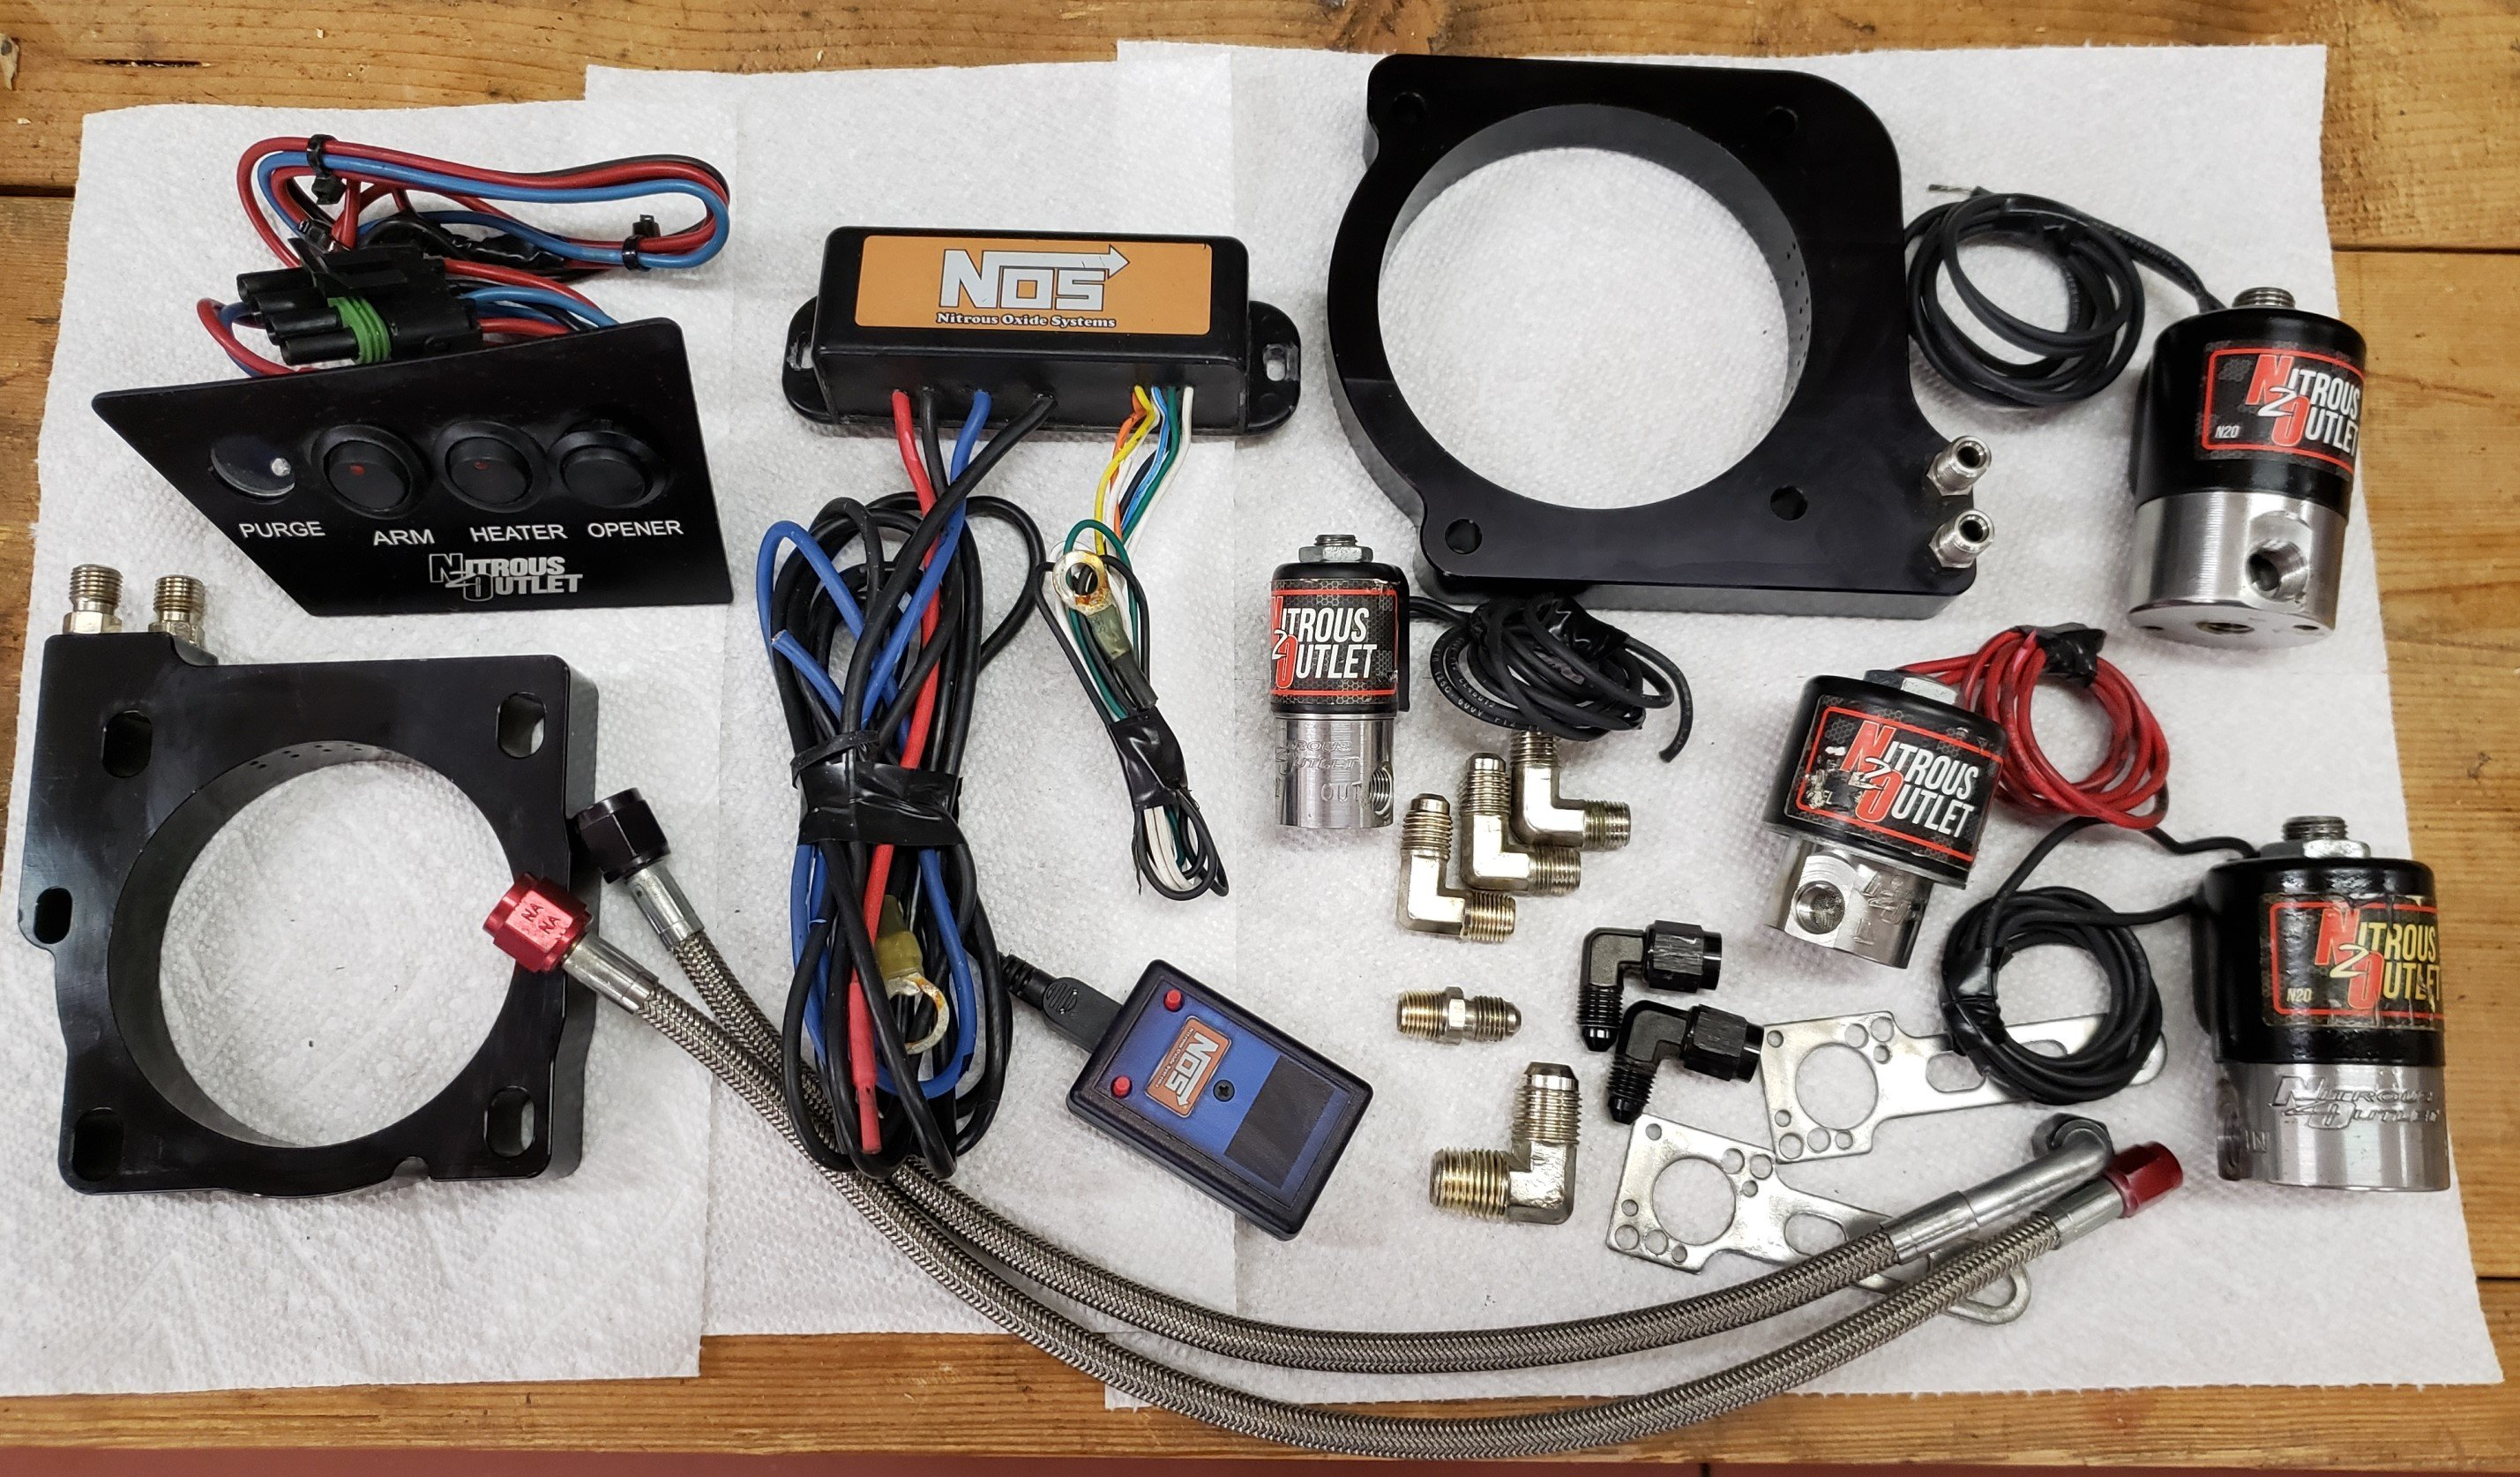 Nitrous System/Parts, NOS Mini, Plates, etc